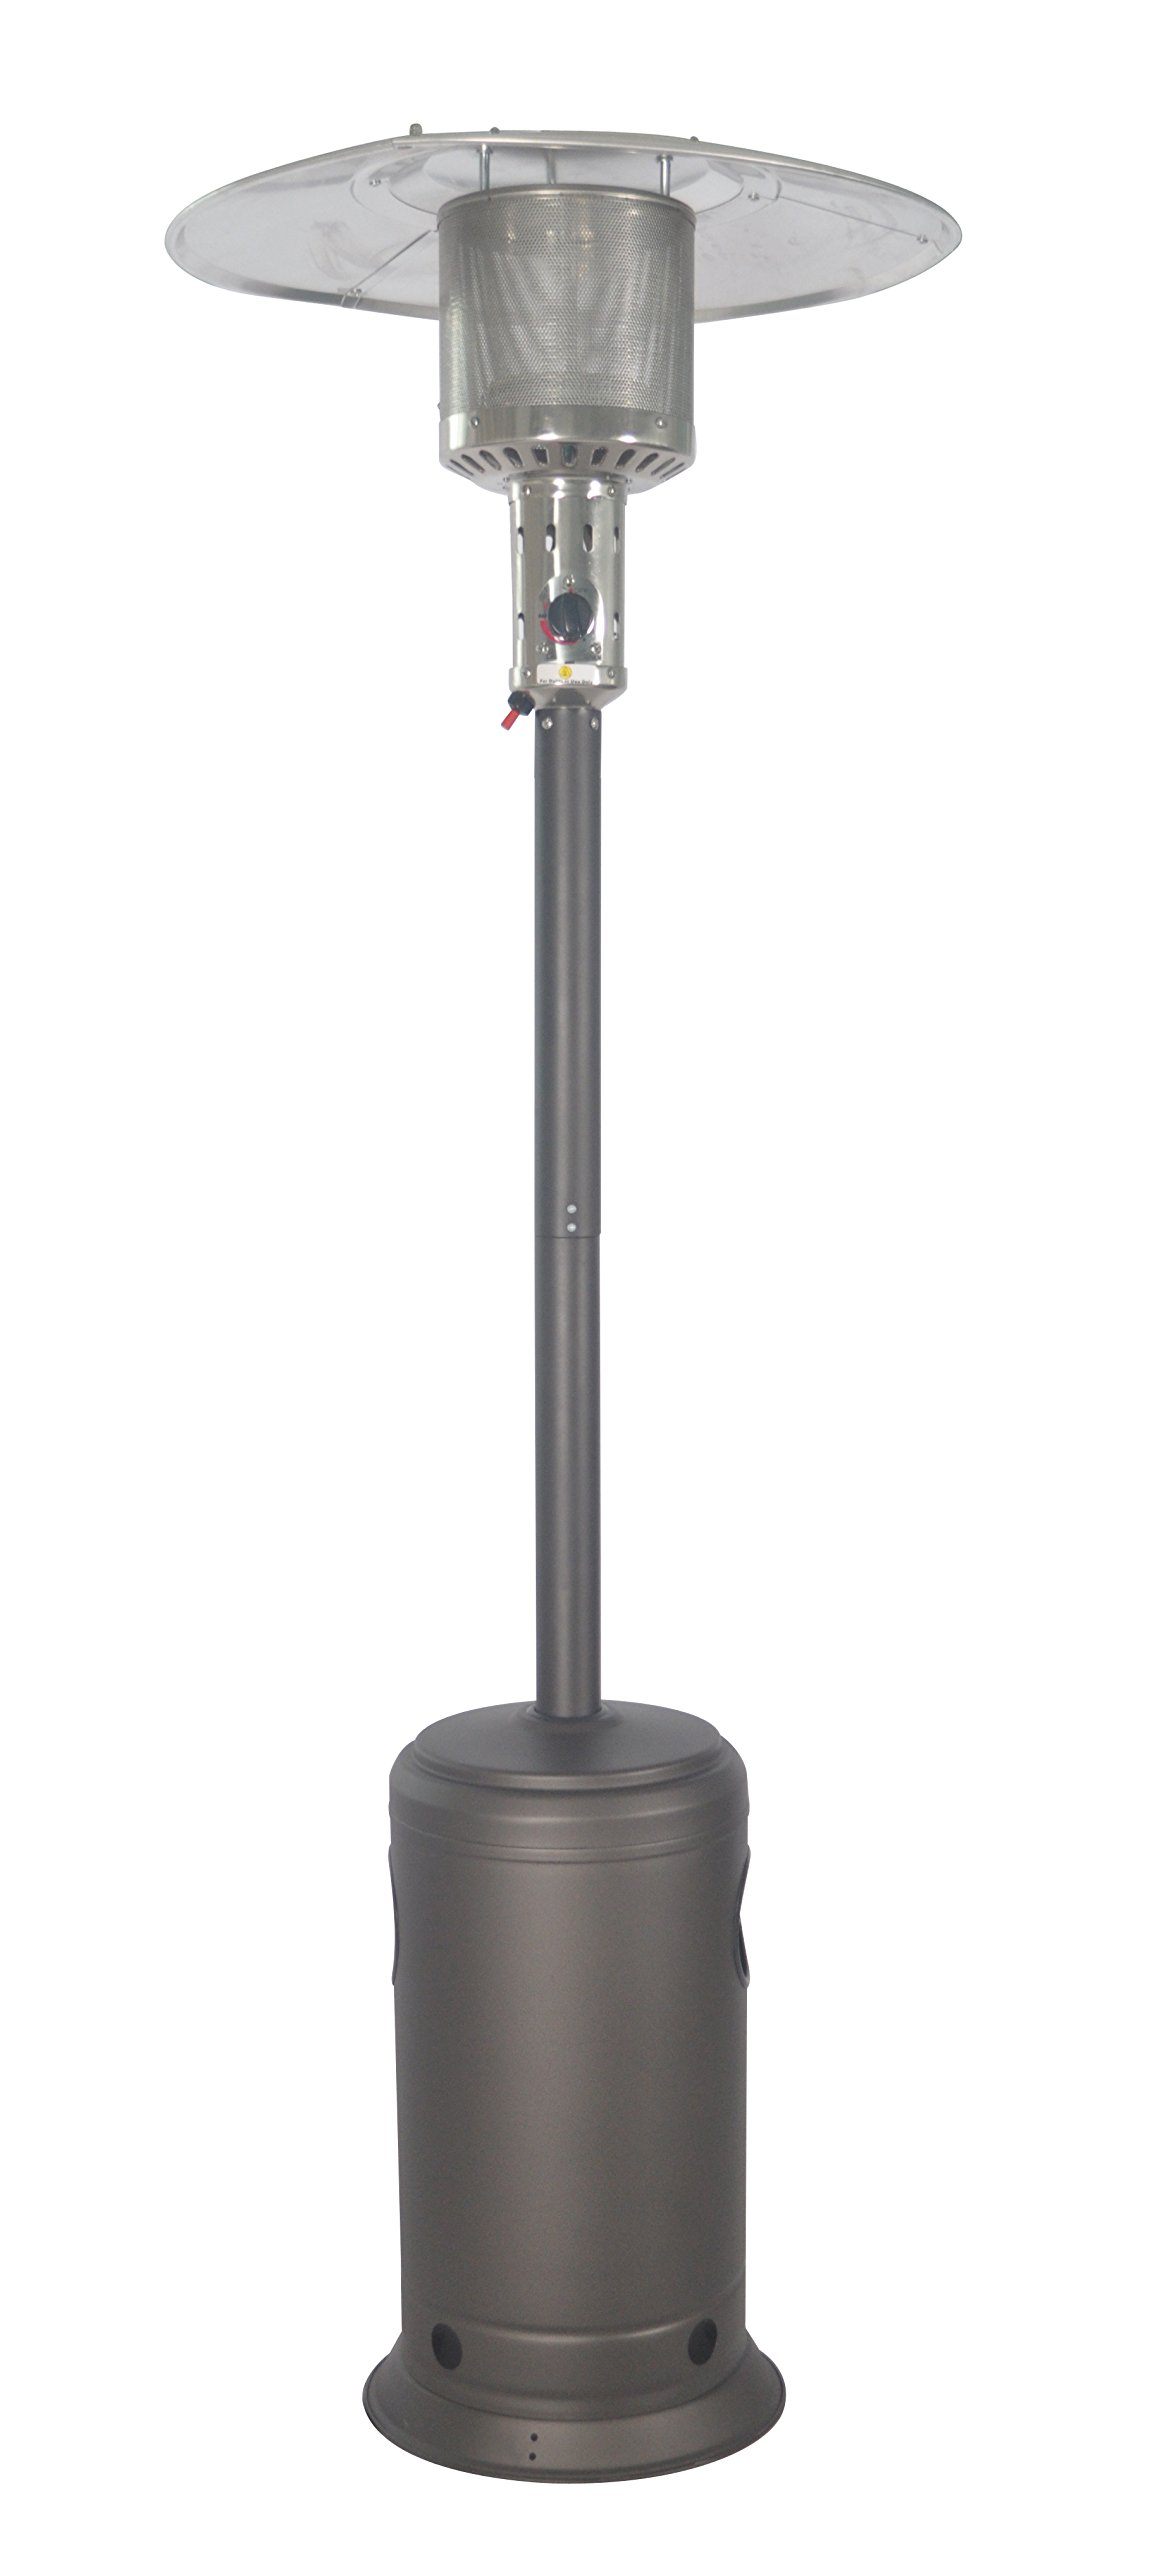 LEGACY HEATING CAPH-7-S CAPH-7Smocha Patio Heater, Hammered Black by LEGACY HEATING